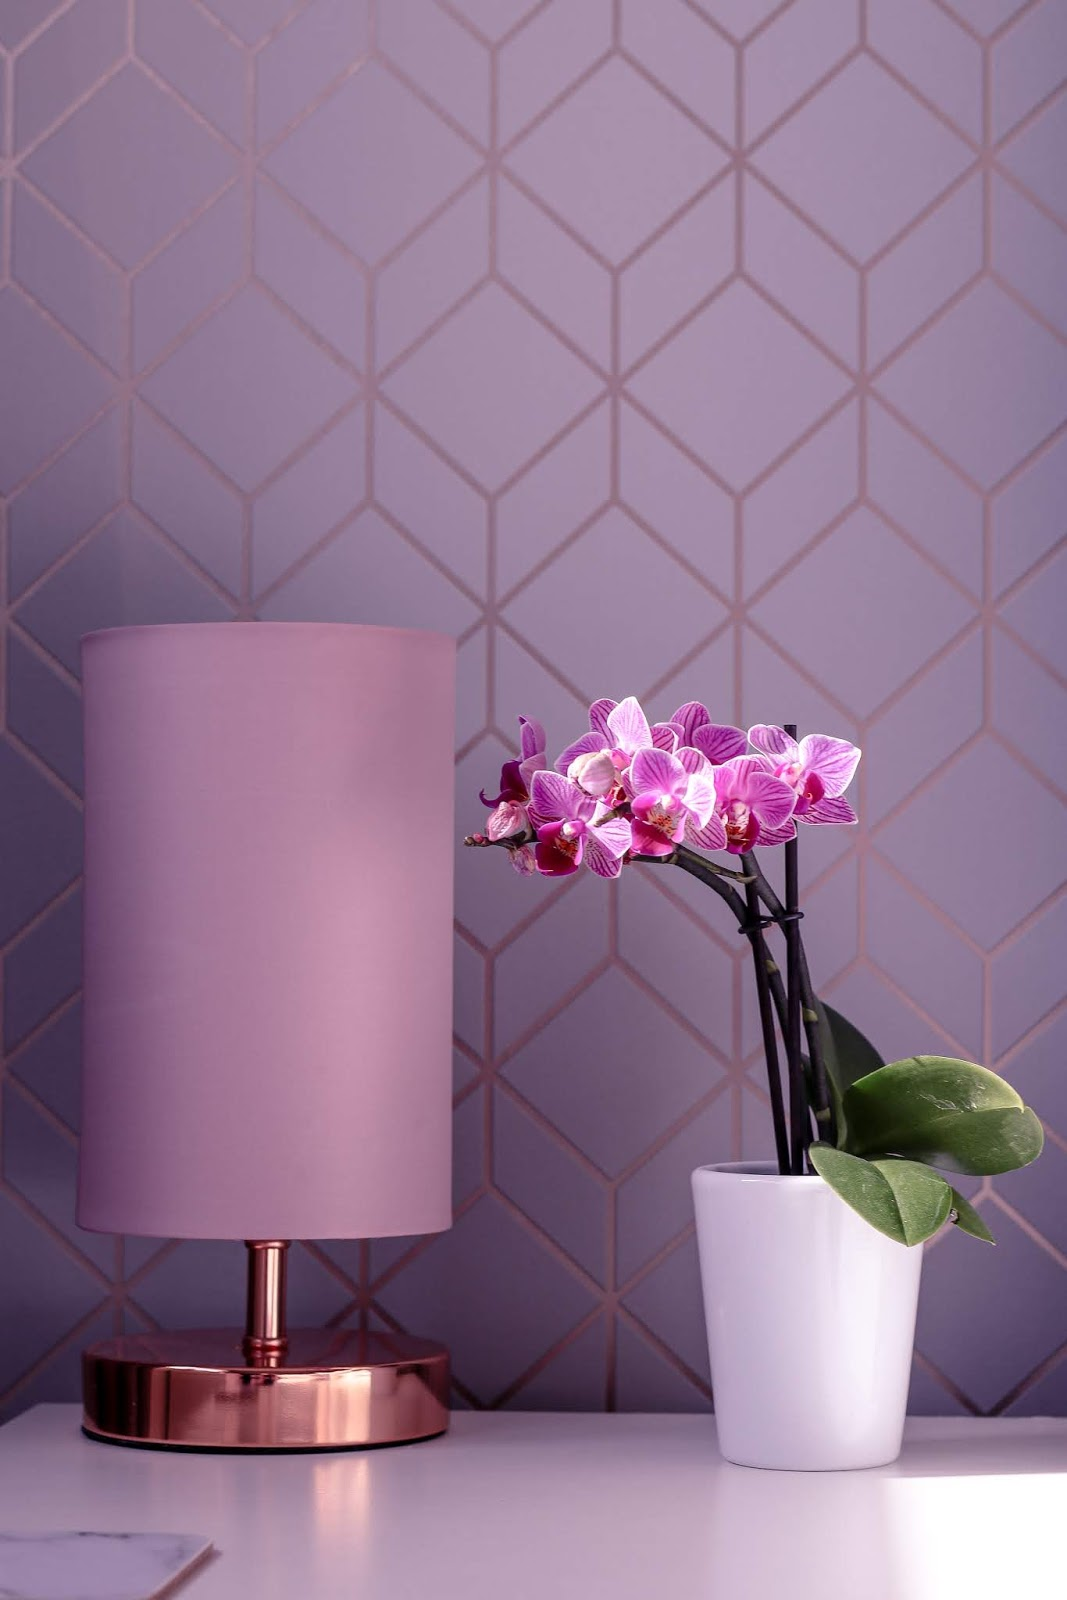 Close up photo of a purple orchid on a white bedside table next to a pink lamp